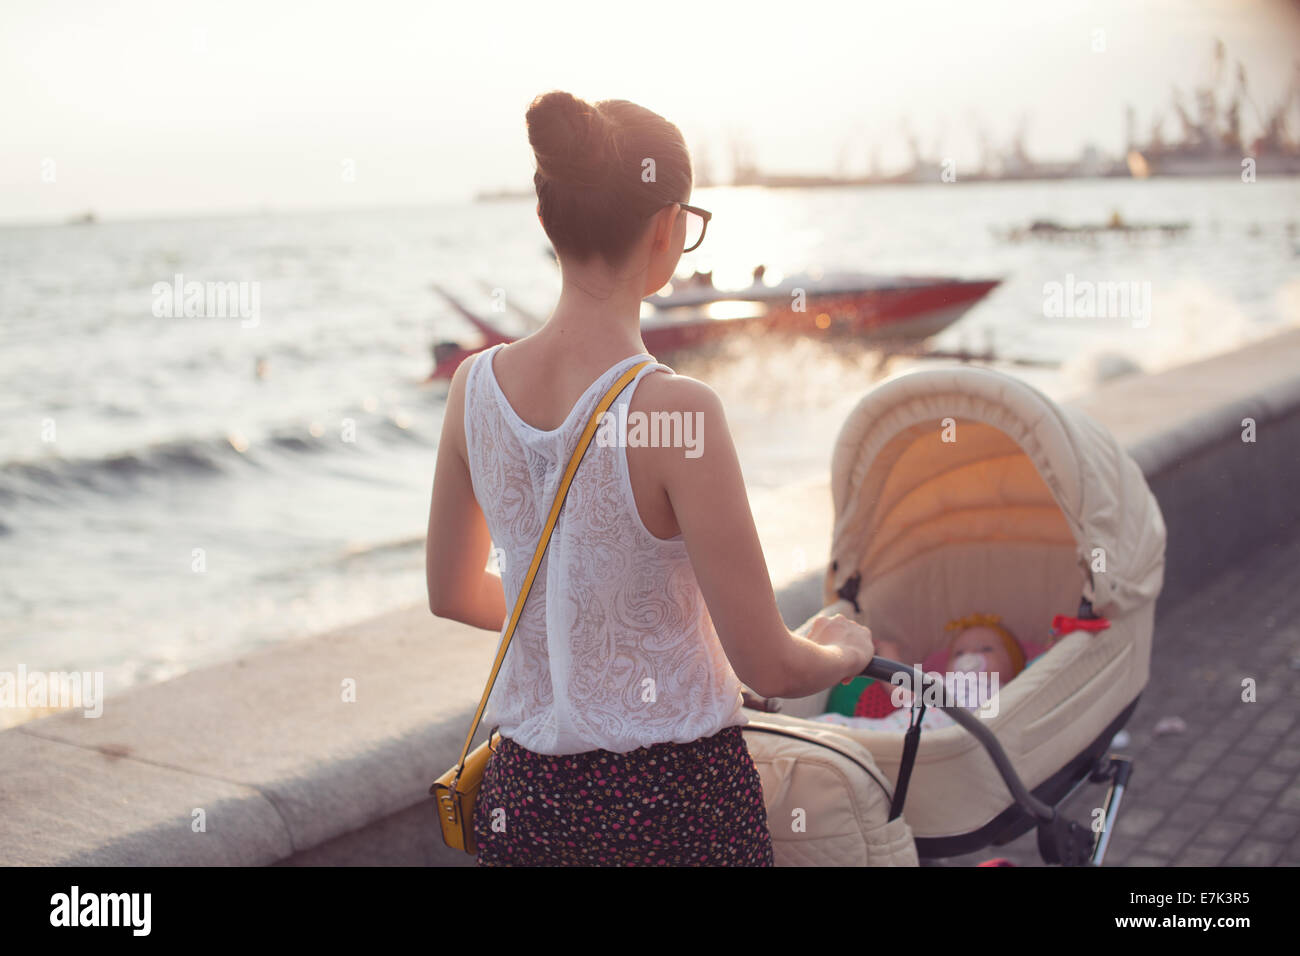 Mother strolling with newborn - Stock Image